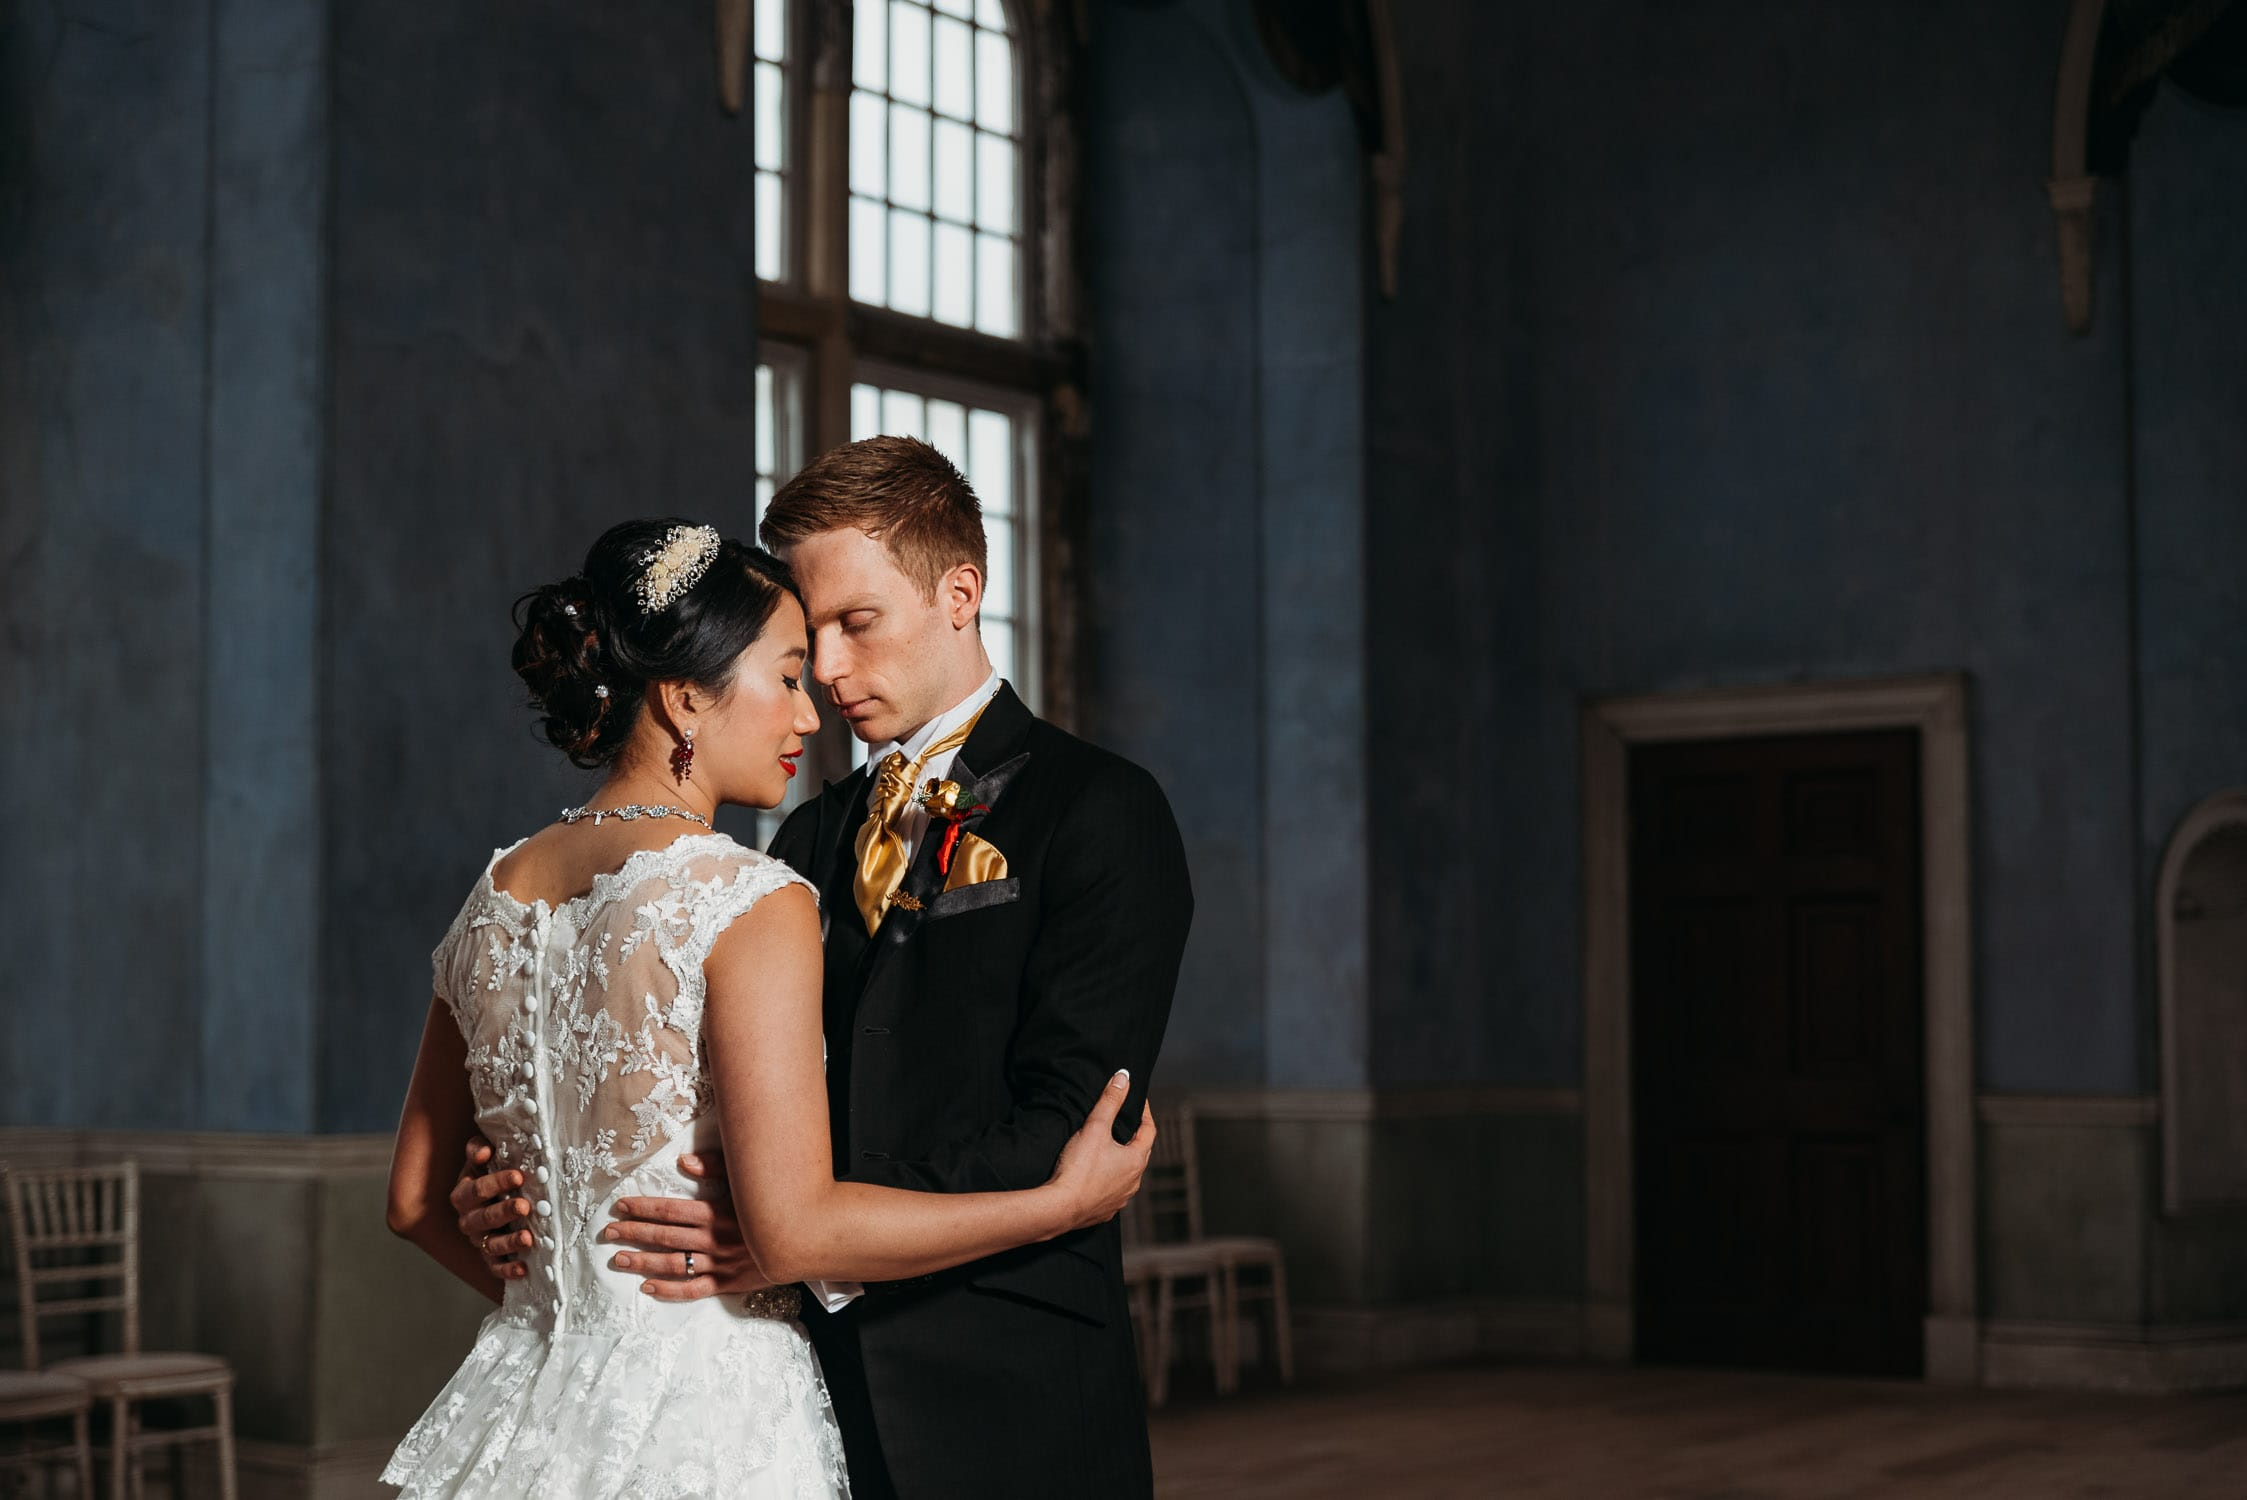 Wedding photo of bride & groom in prospect room at Wollaton Hall in Nottingham